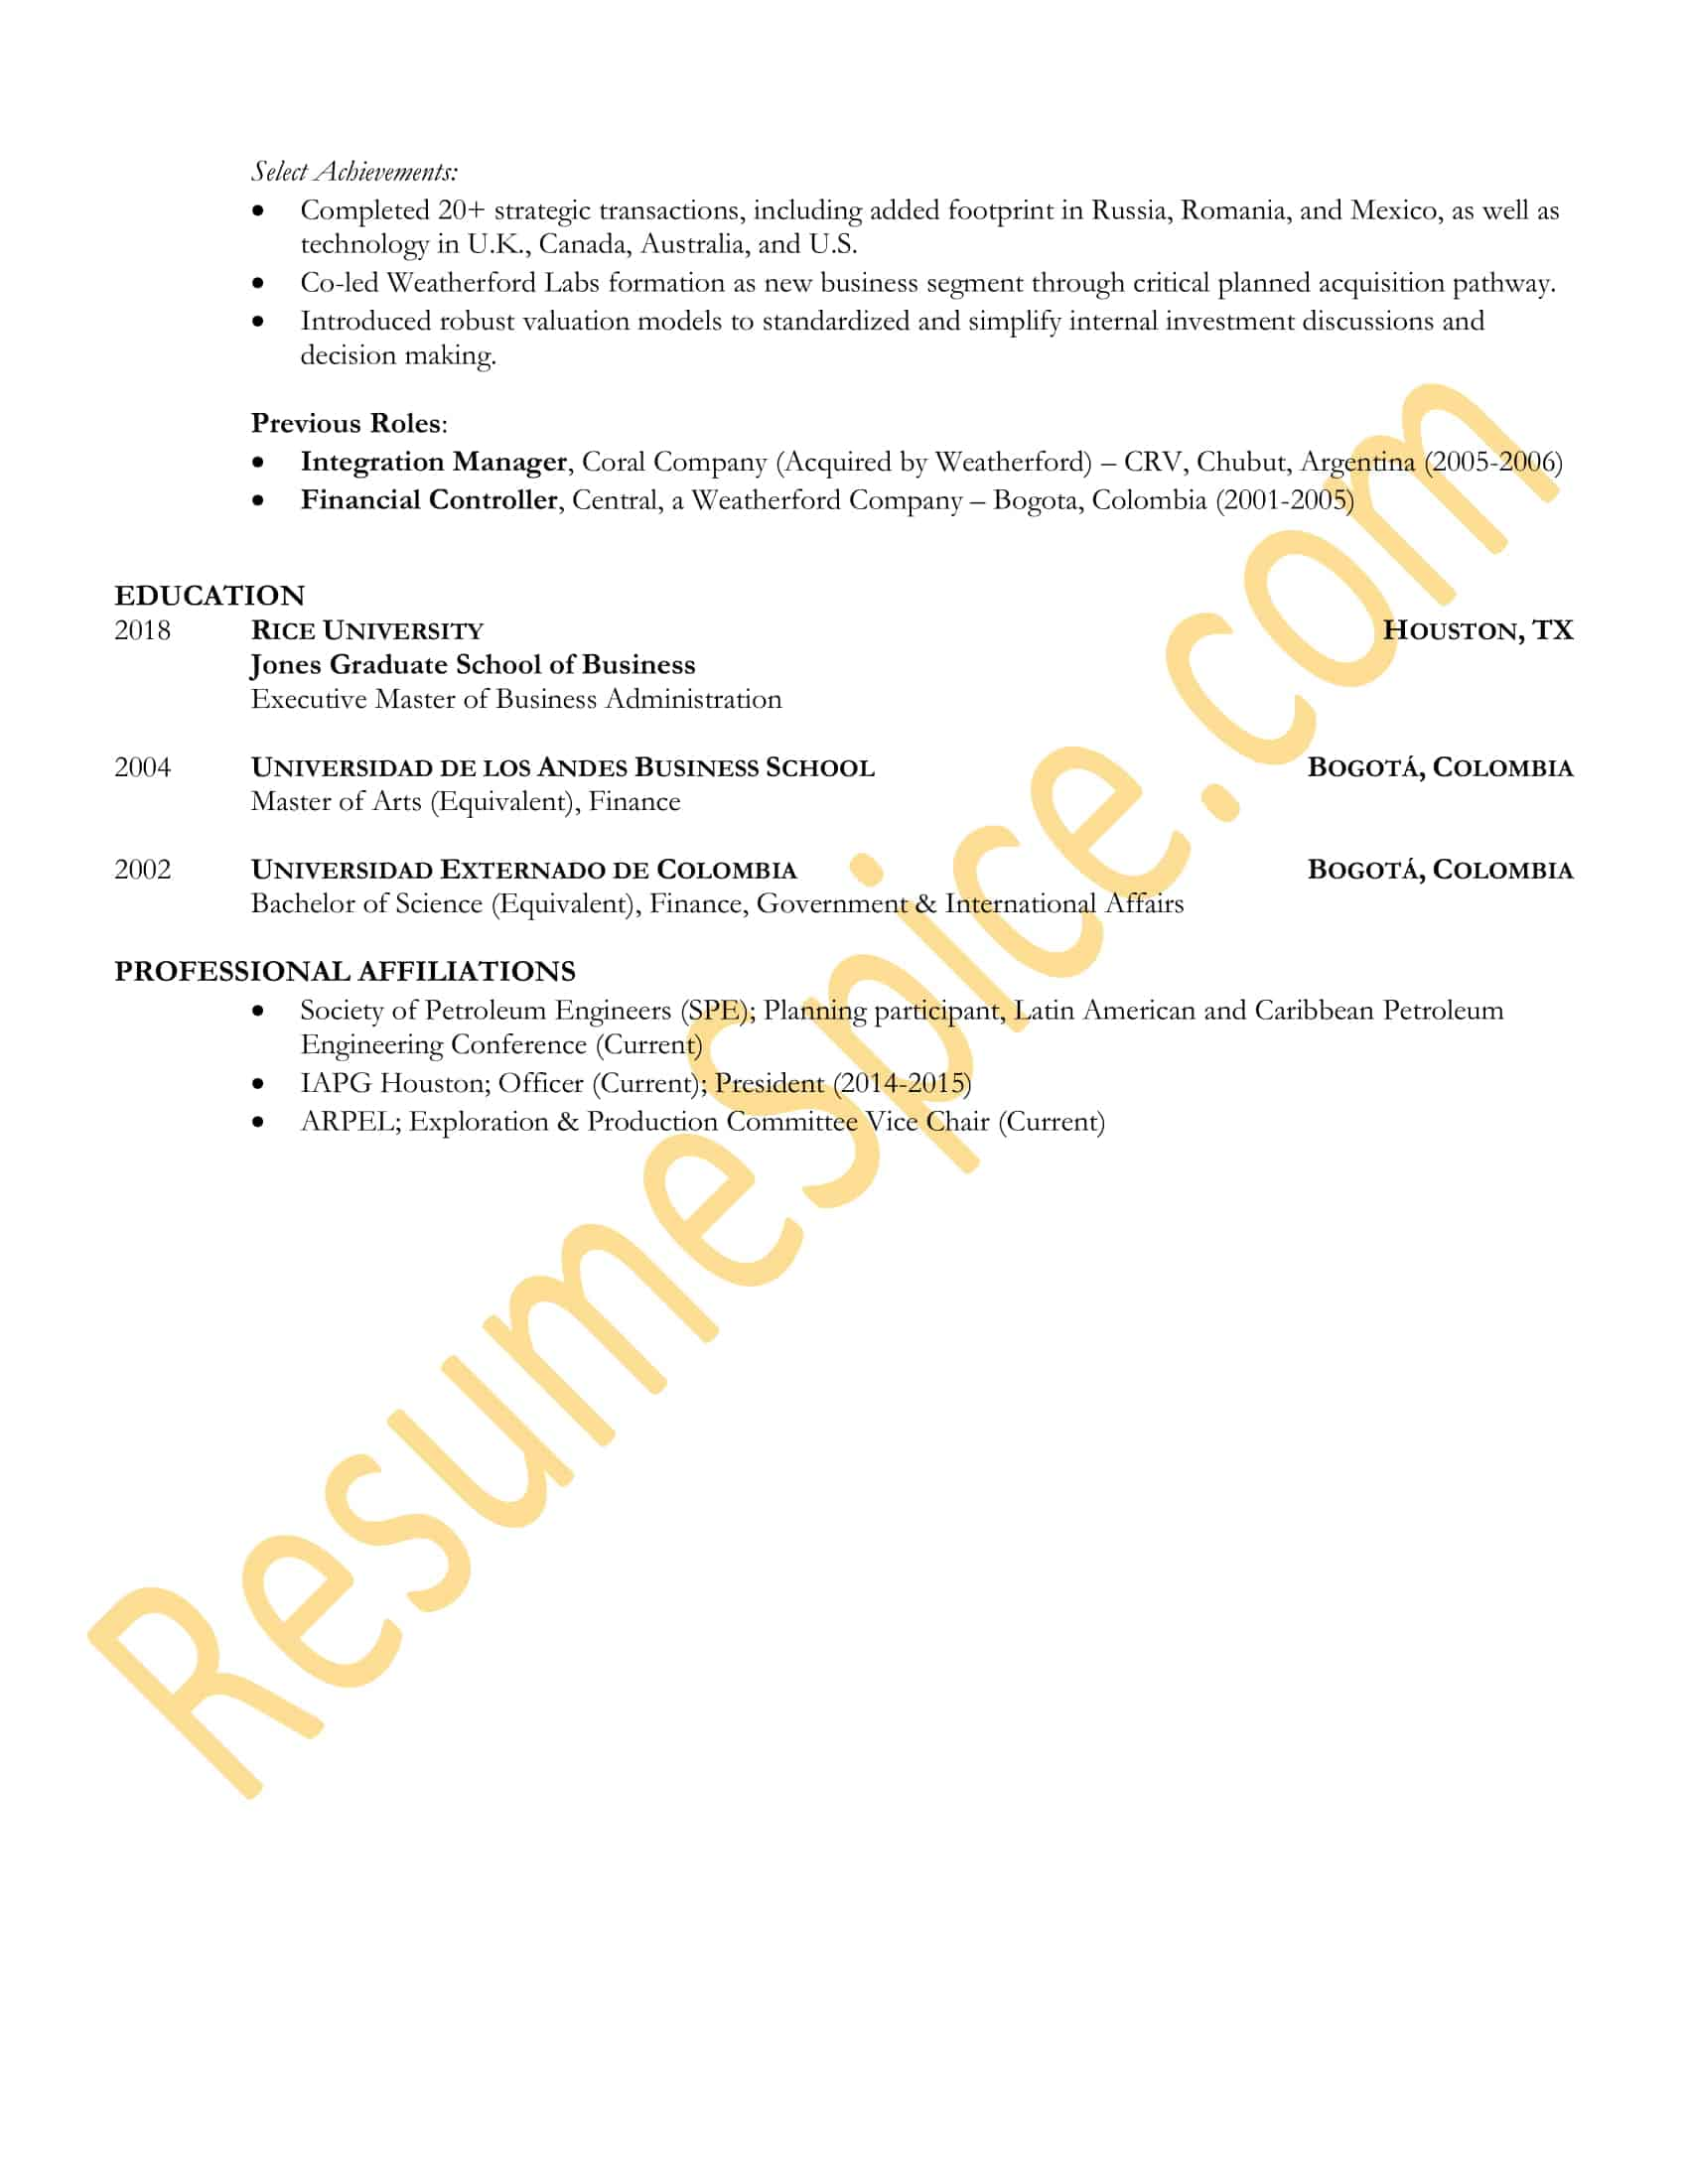 Pm-Executive_Resume-Senior_Executive_-_Oilfield_Technology_&_Corporate_Development-Page_3